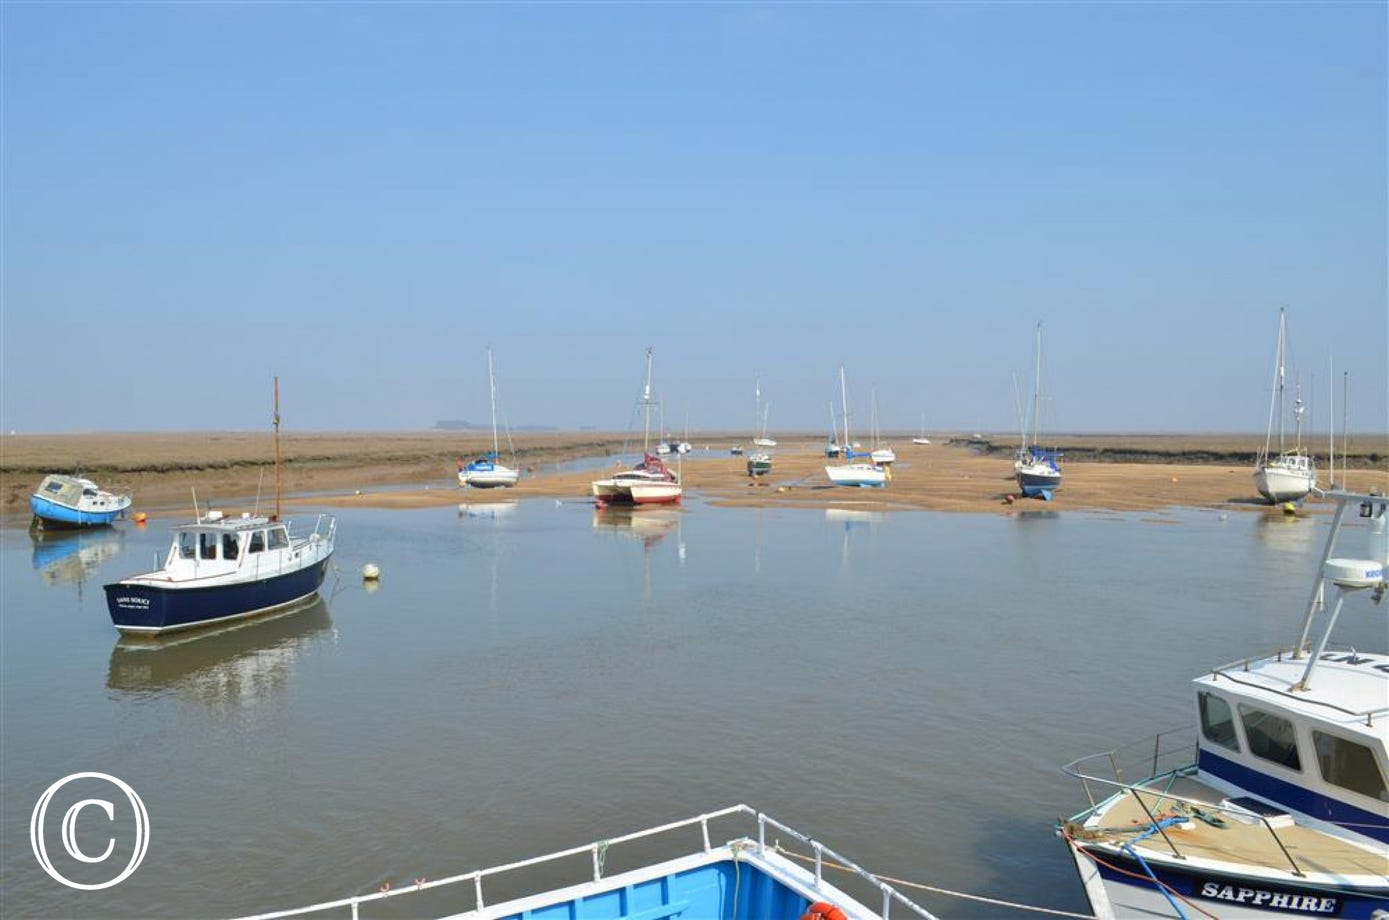 The Quay at Wells